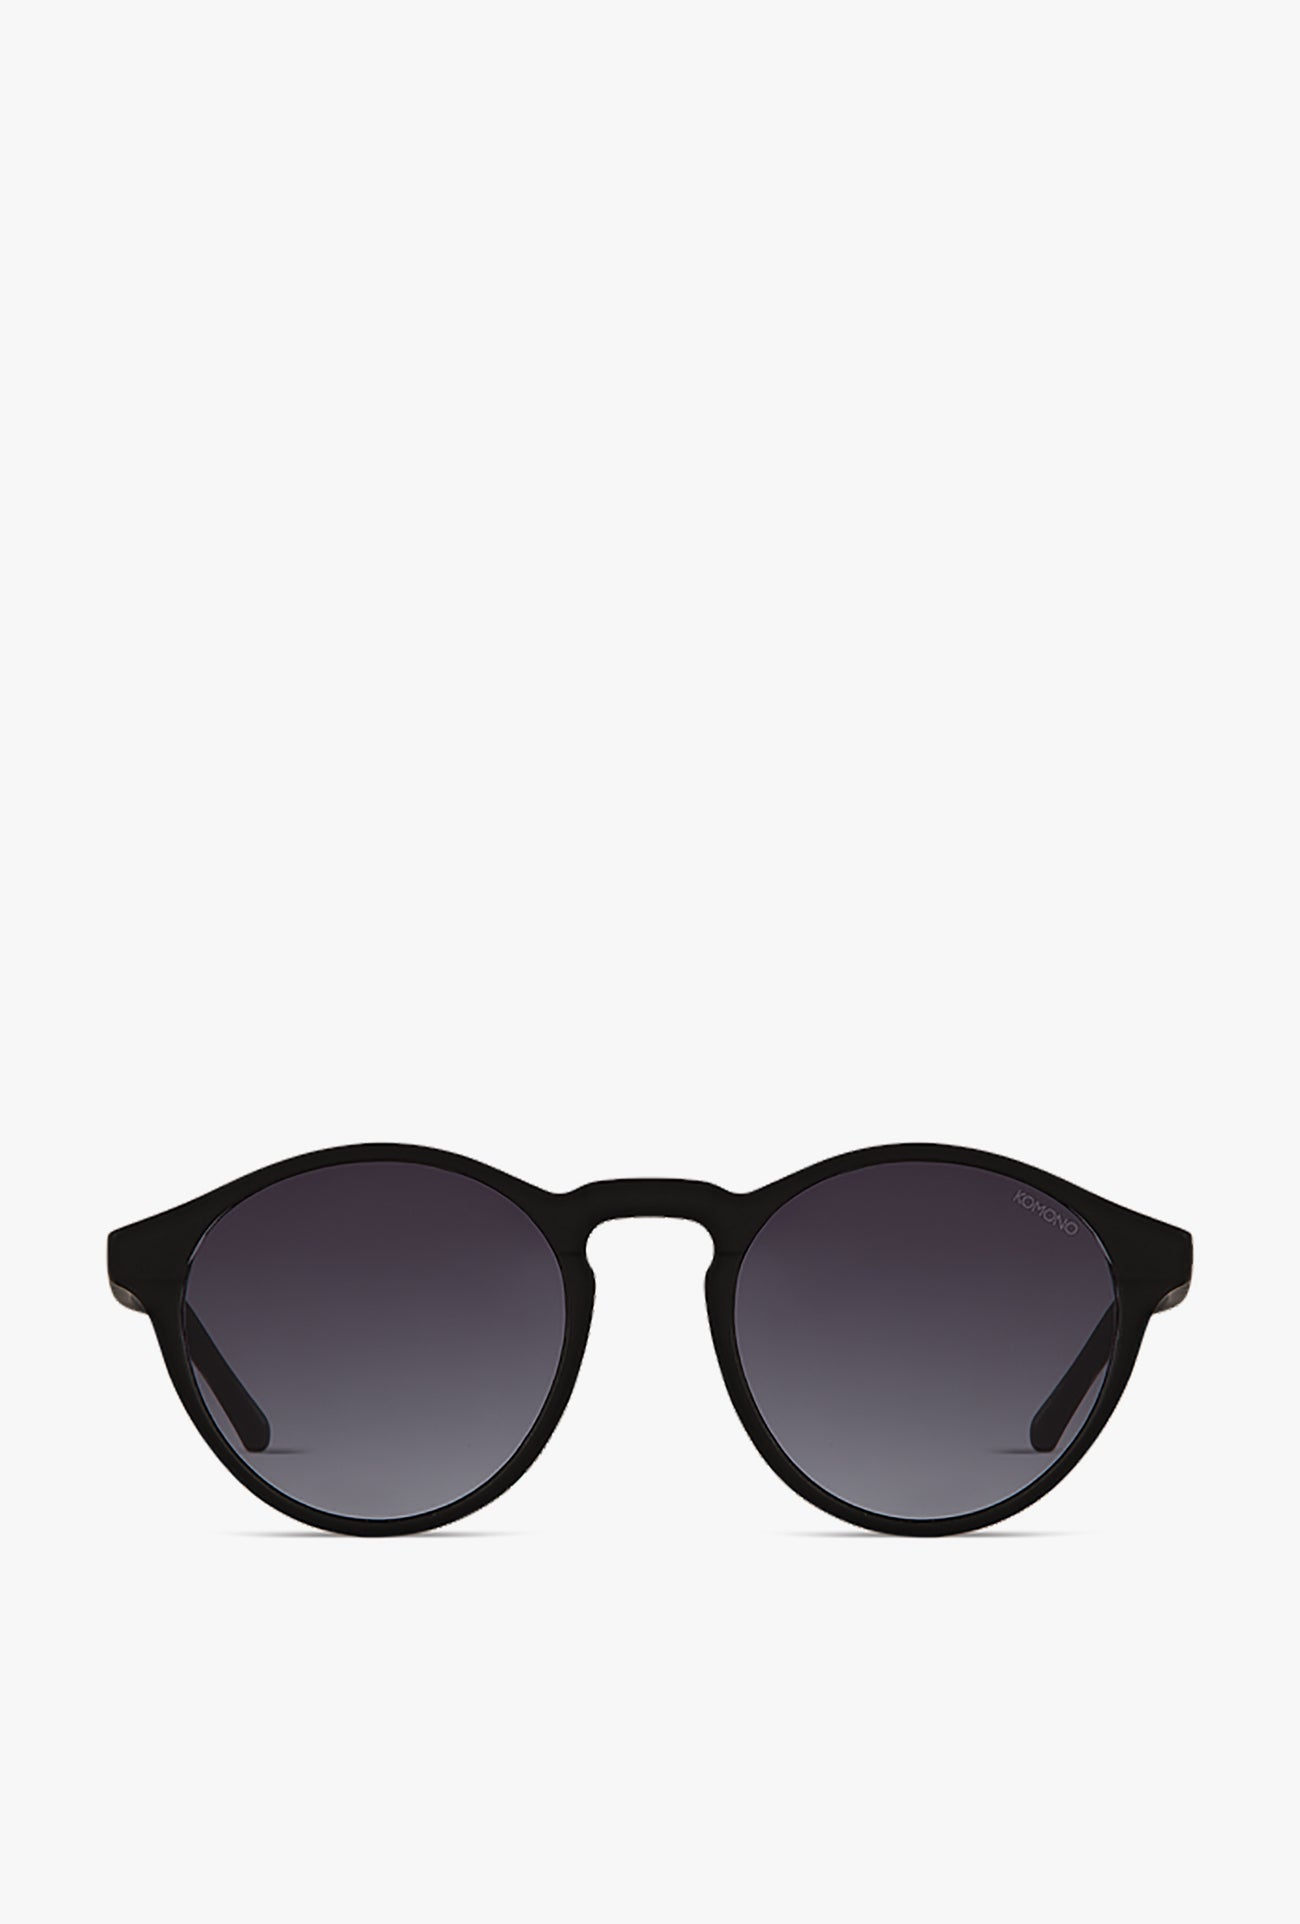 Devon Sunglasses - Carbon